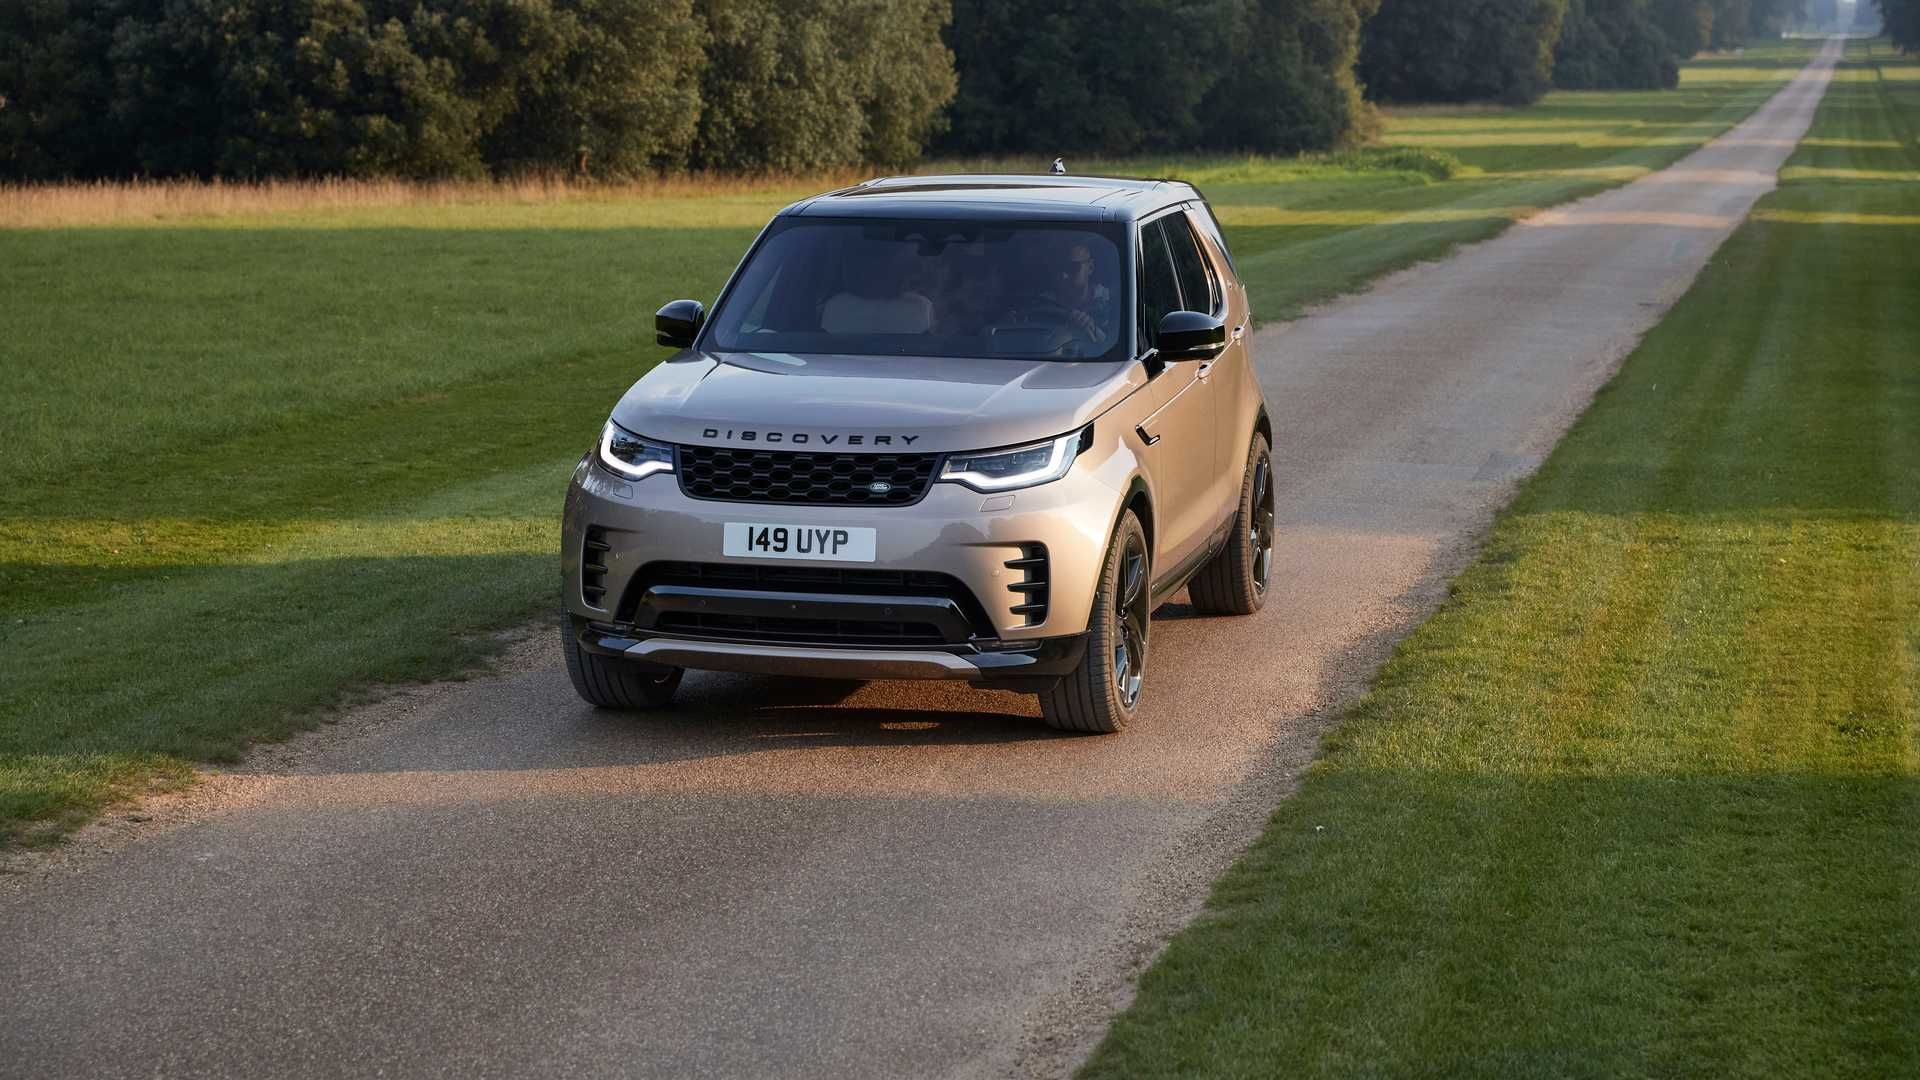 2021-Land-Rover-Discovery-28